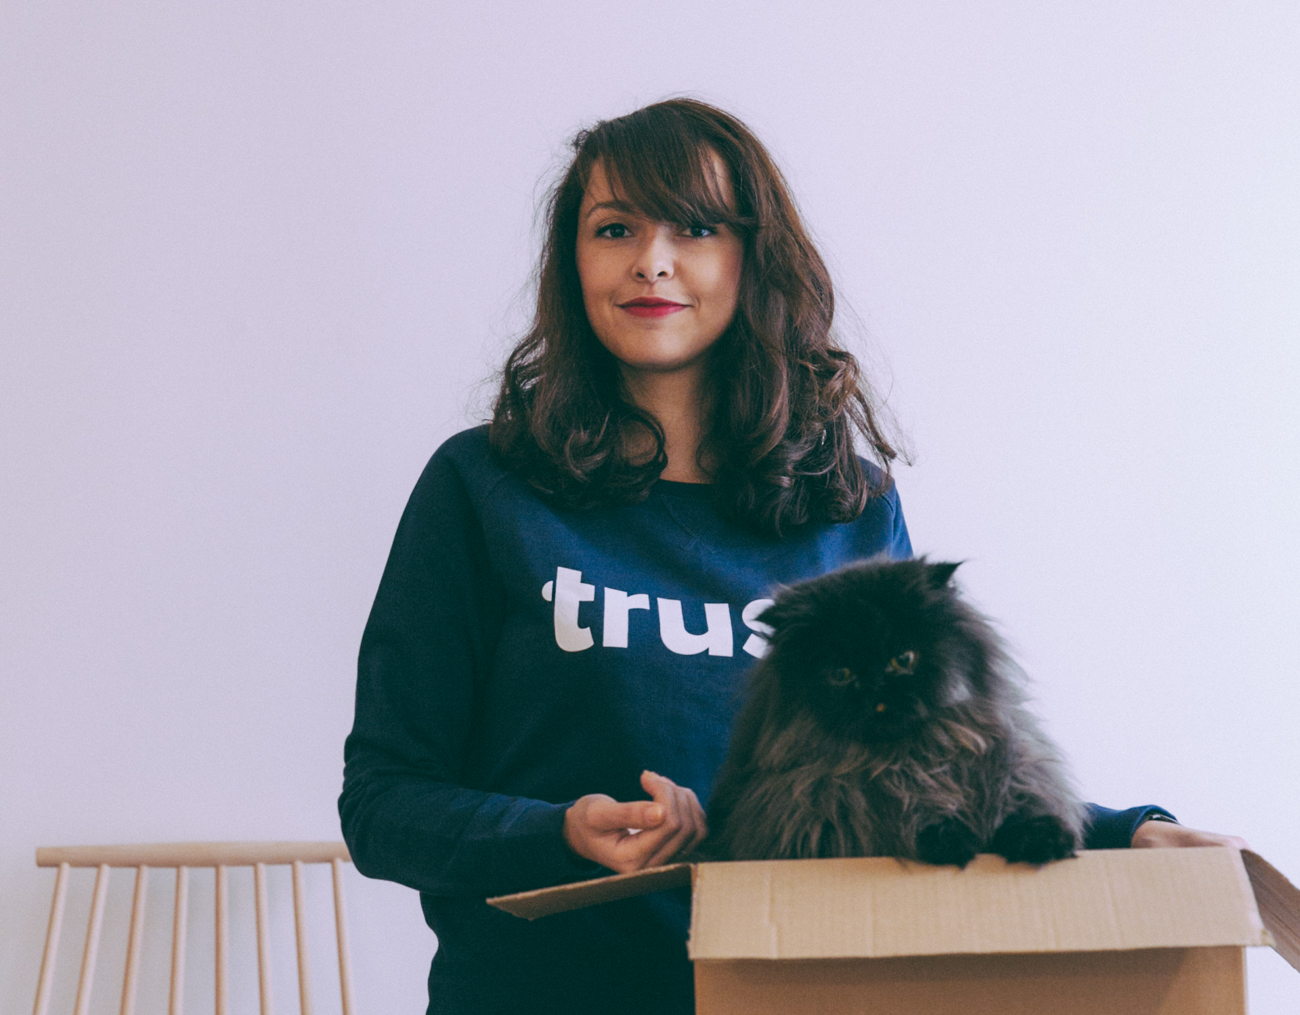 Trusk meilleur service de transport déménagement Paris - avis blog blogueuse france paris dollyjessy